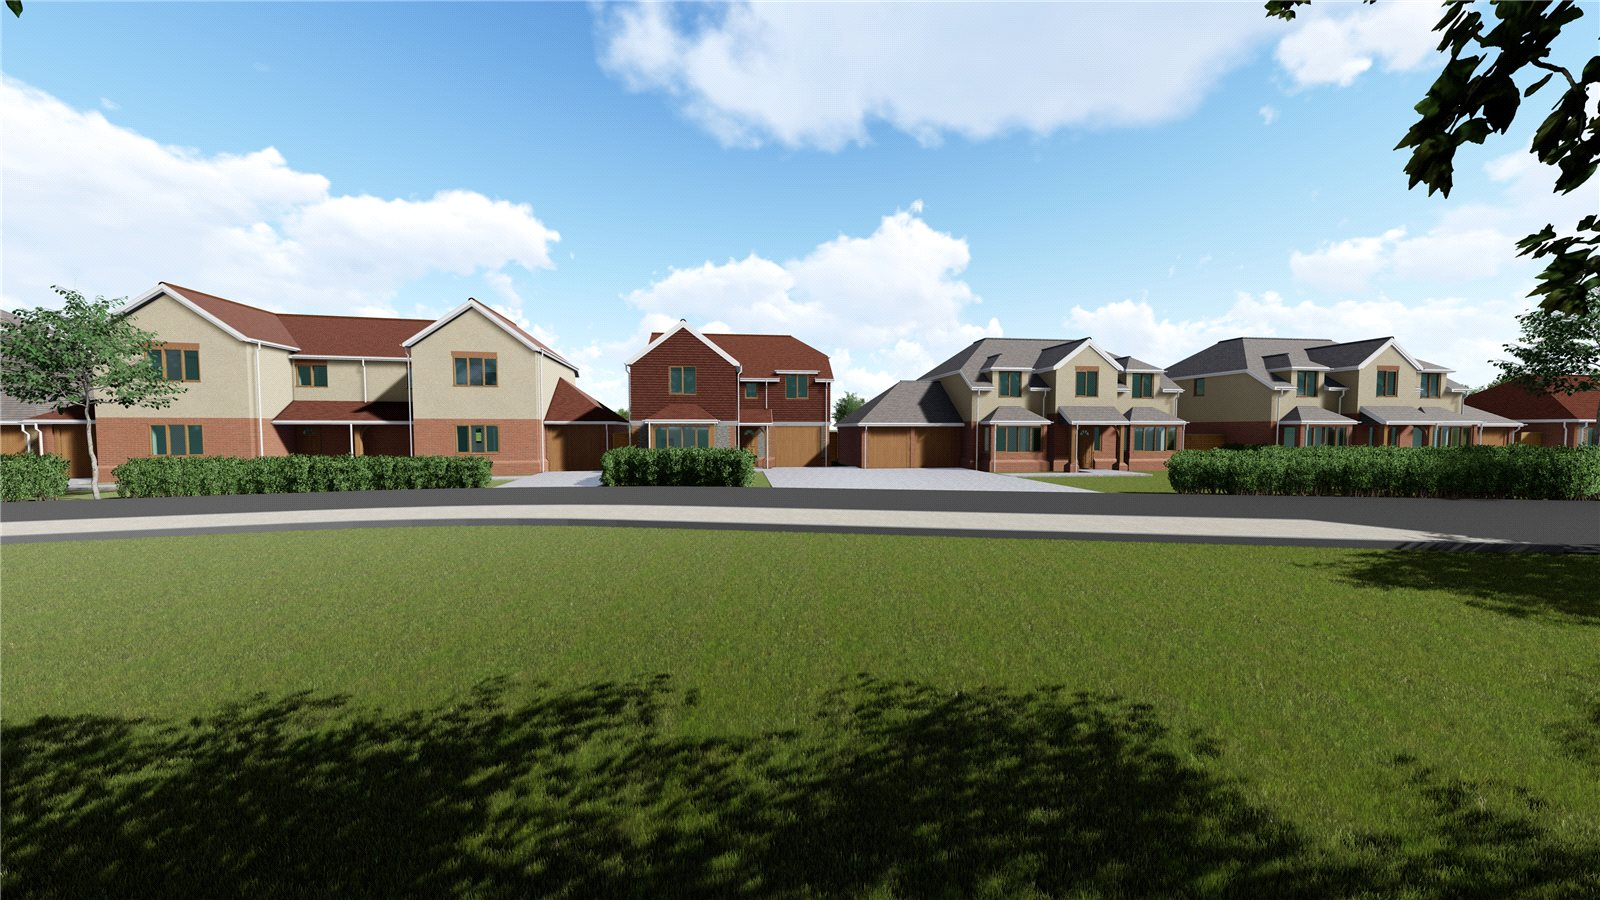 4 bed house for sale in Starlings View, Arundel Road, Angmering 2